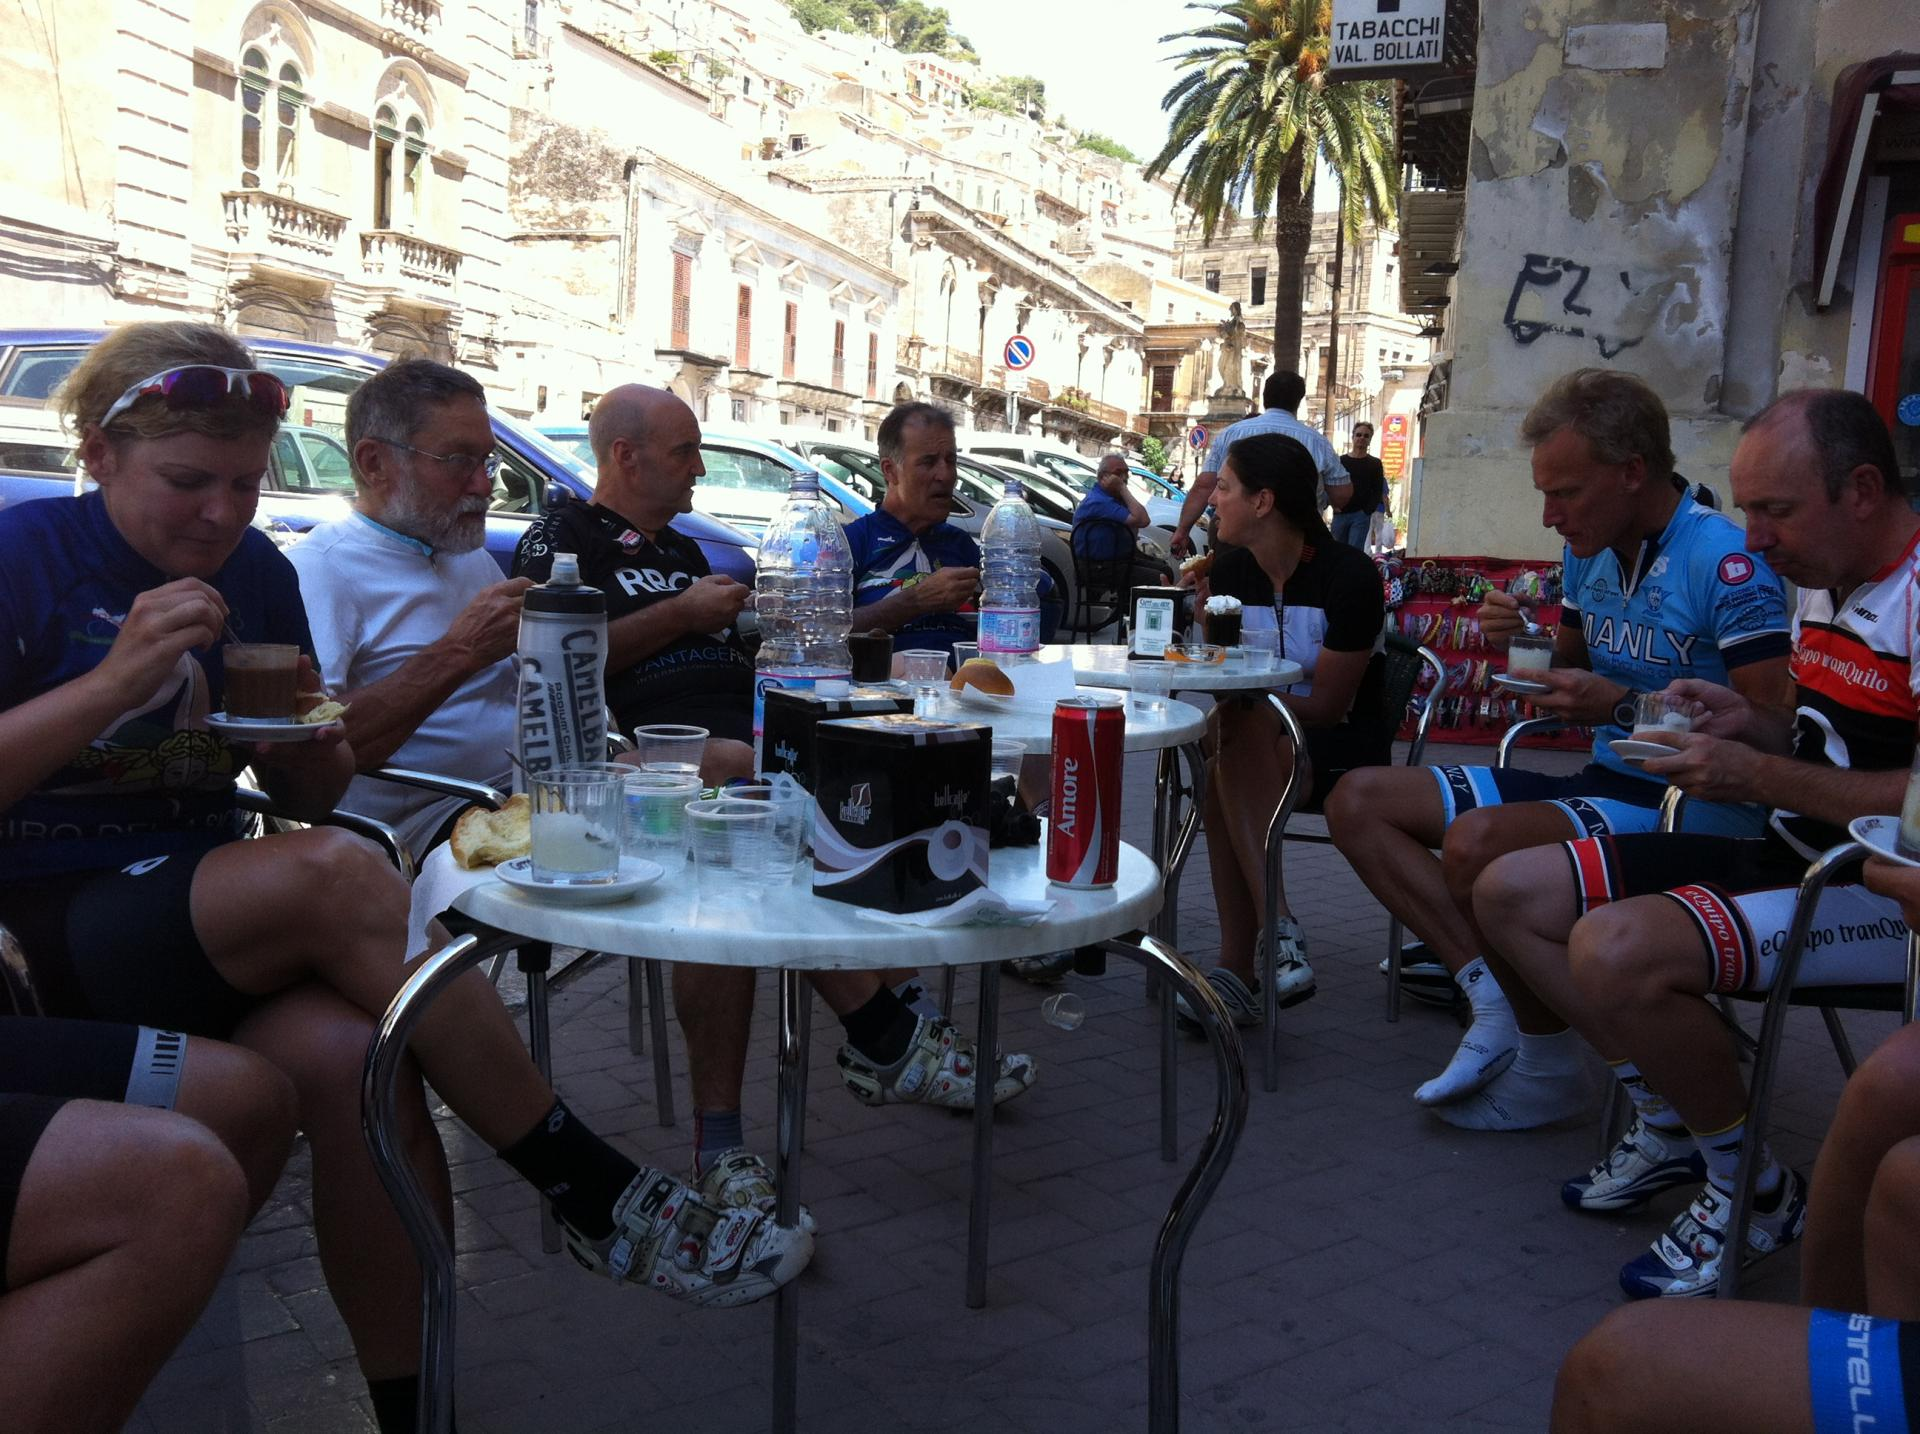 Grab your biking buddies and head to Sicily for an unforgetable cycle tour